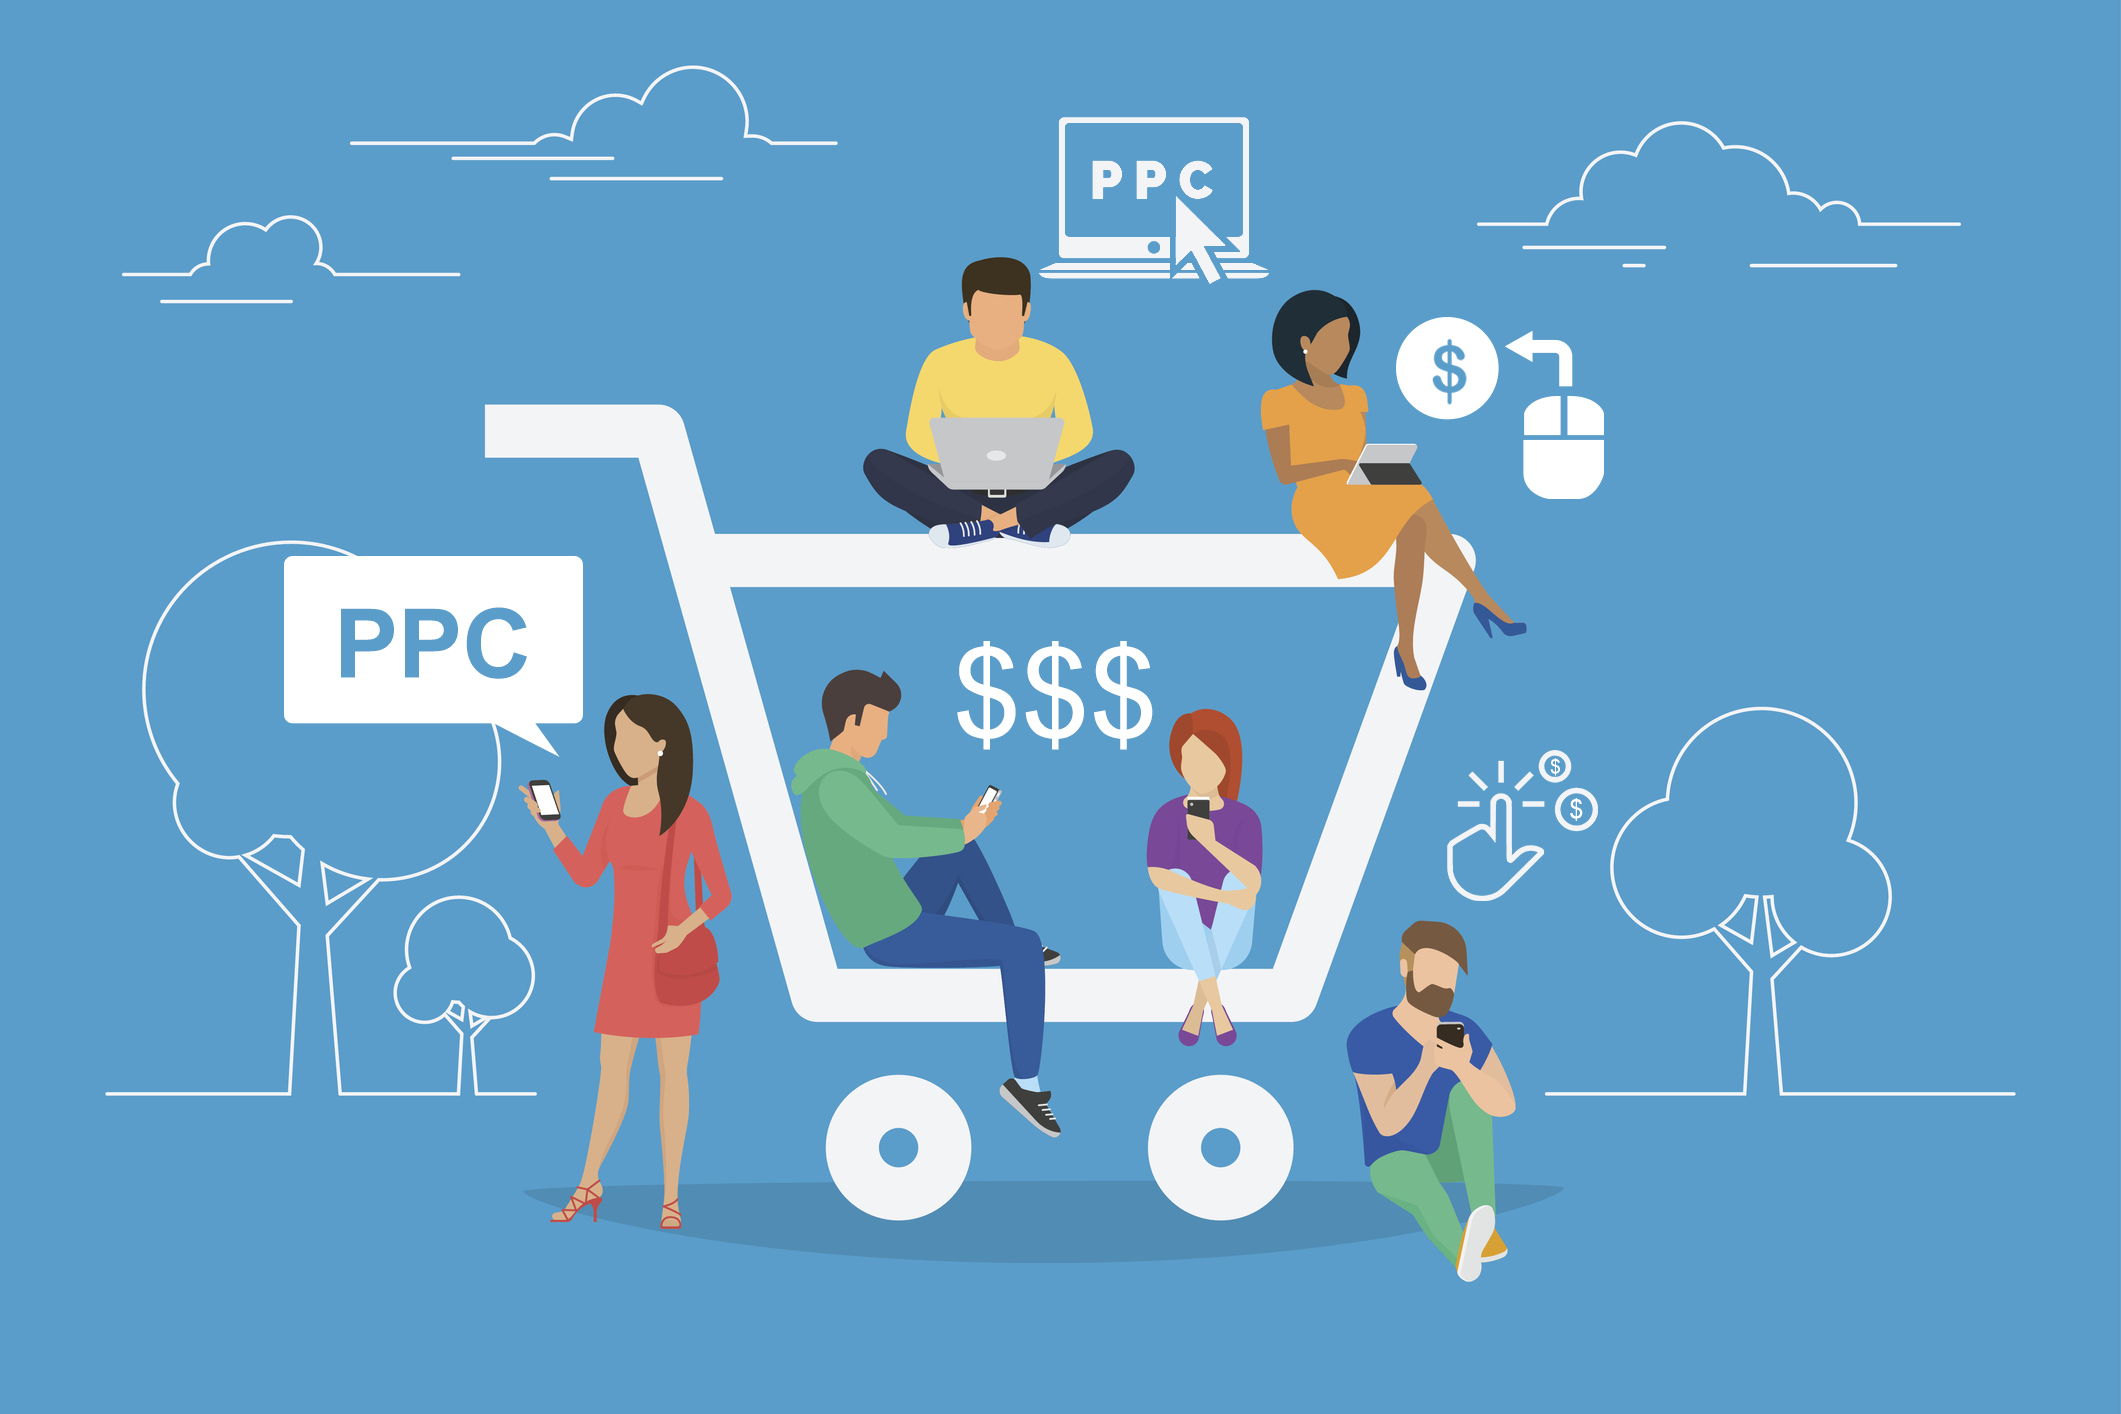 ppc management, PPC advertising